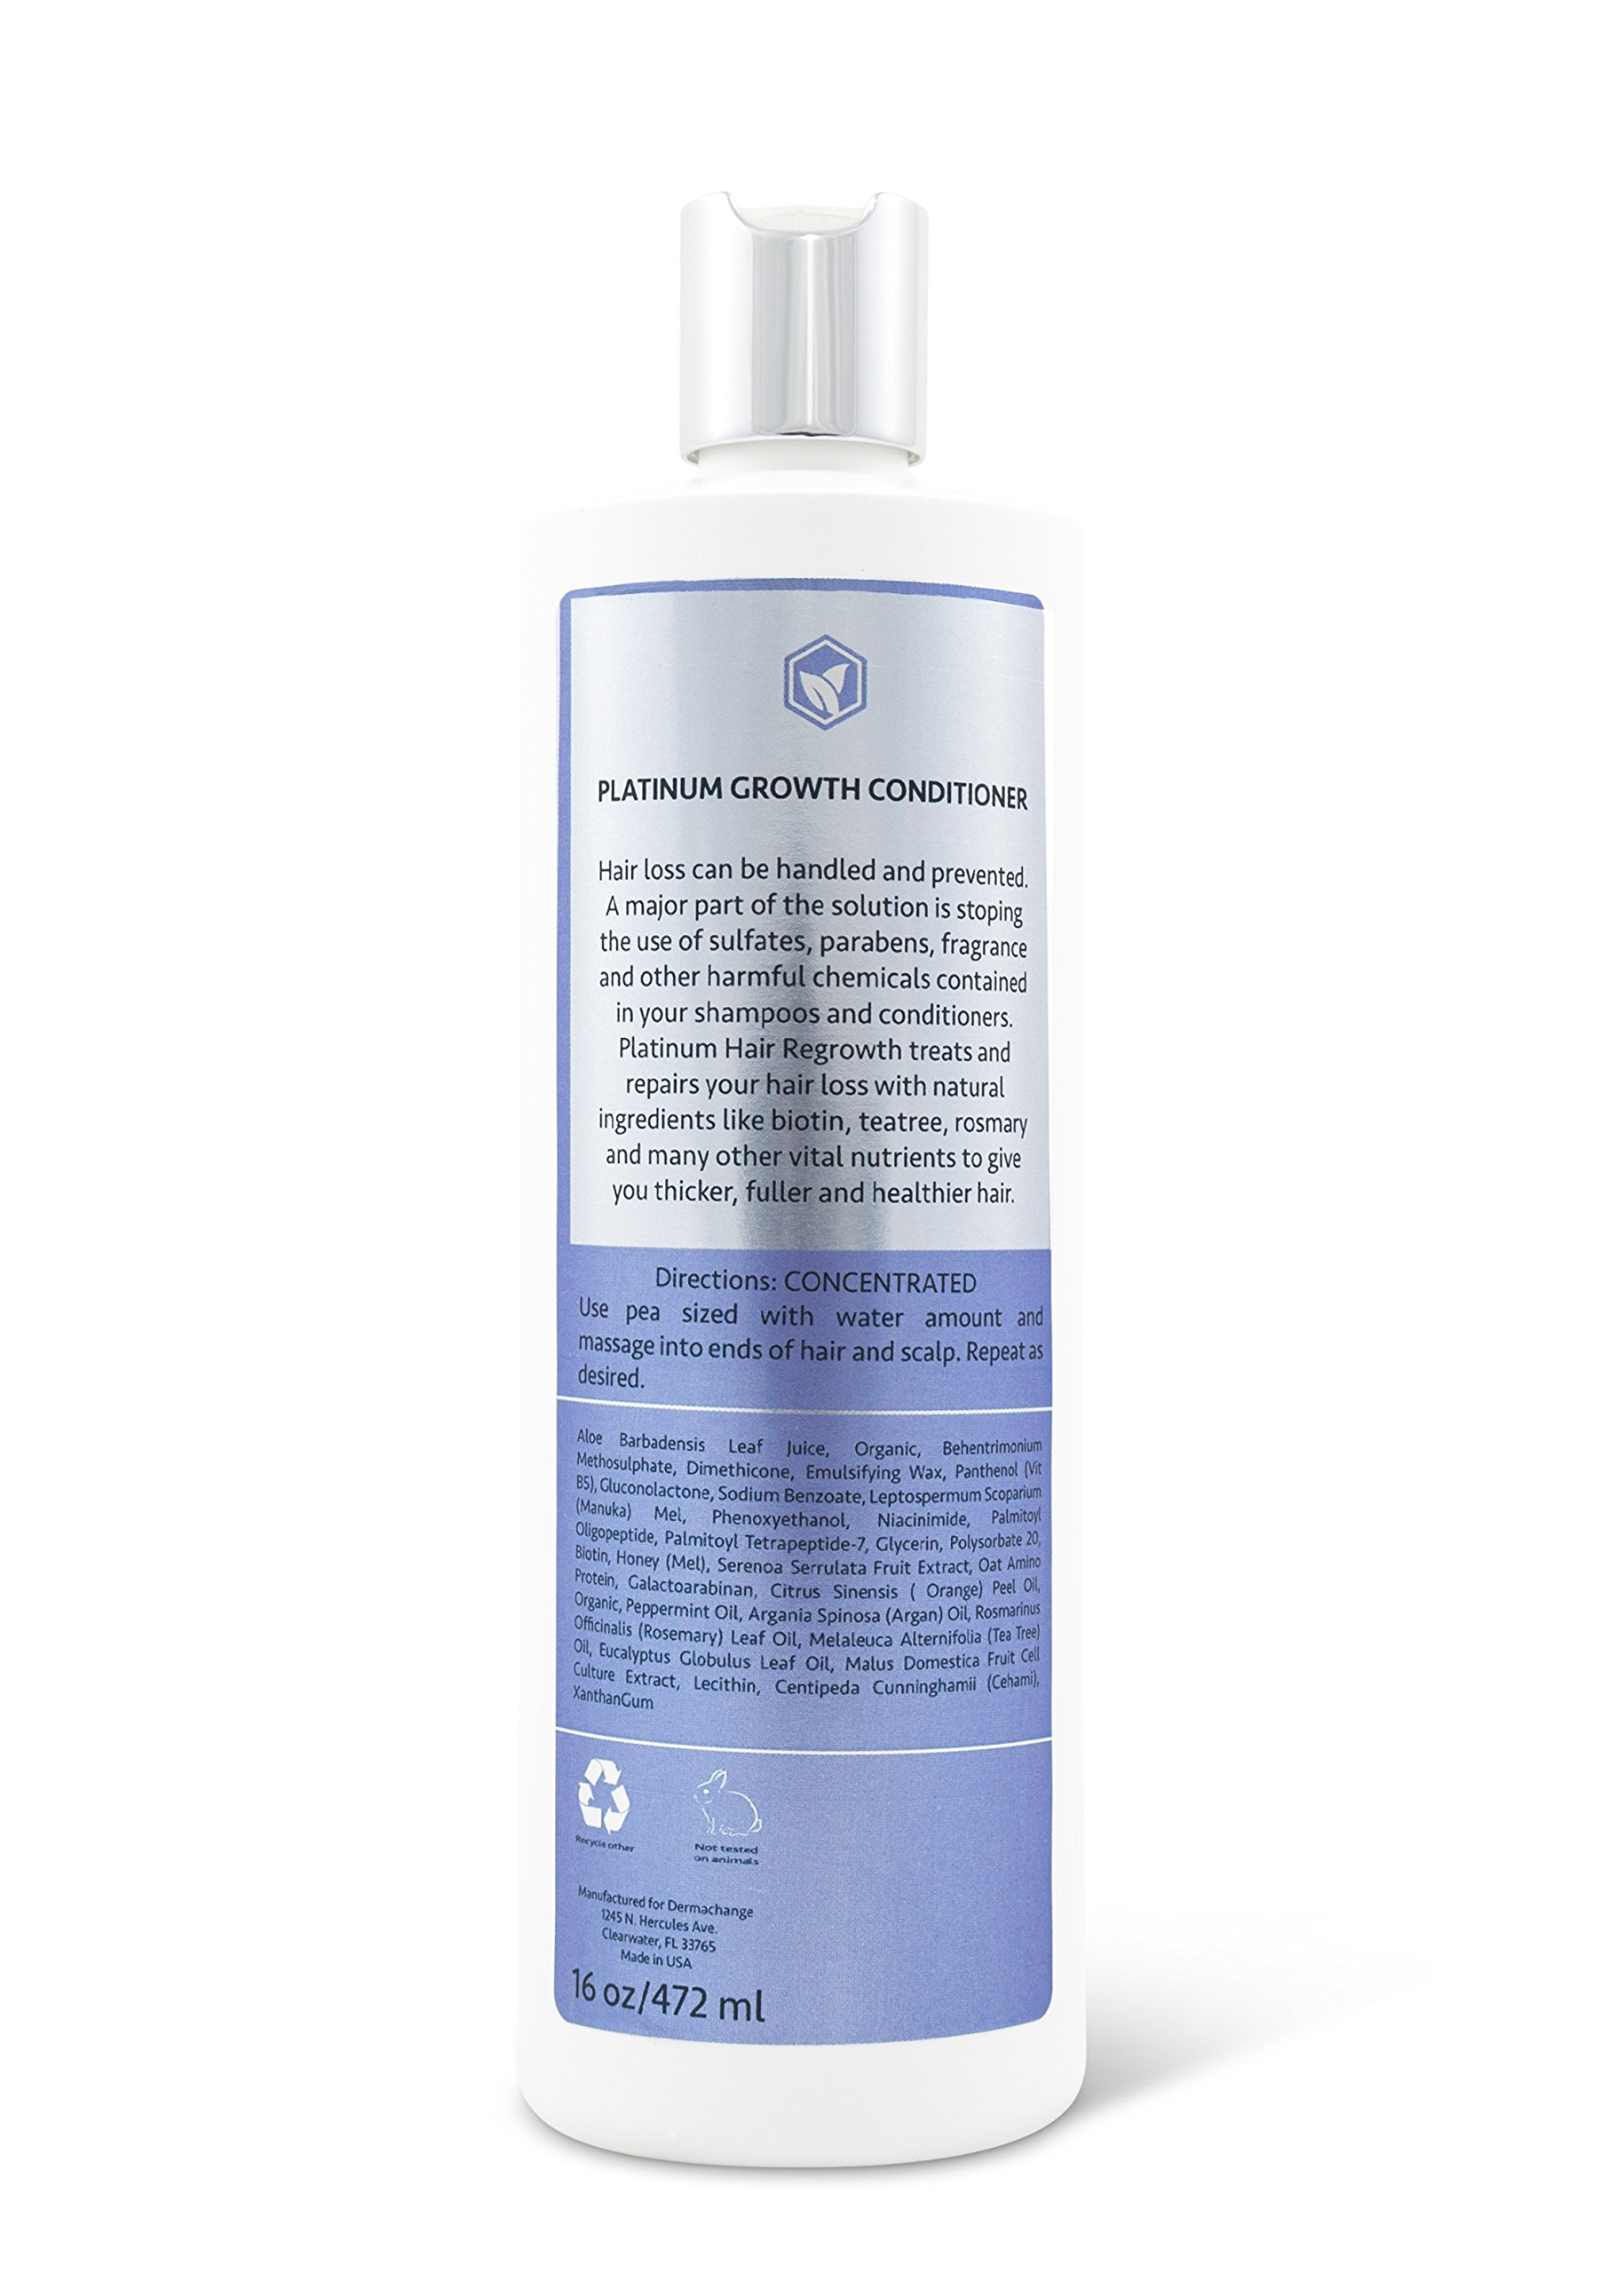 DermaChange Platinum Hair Growth Moisturizing Conditioner - With Argan Oil, Biotin & Tea Tree Extract - Supports Hair Regrowth - Hair Loss Treatments (16 oz) - Made in USA by DermaChange (Image #3)